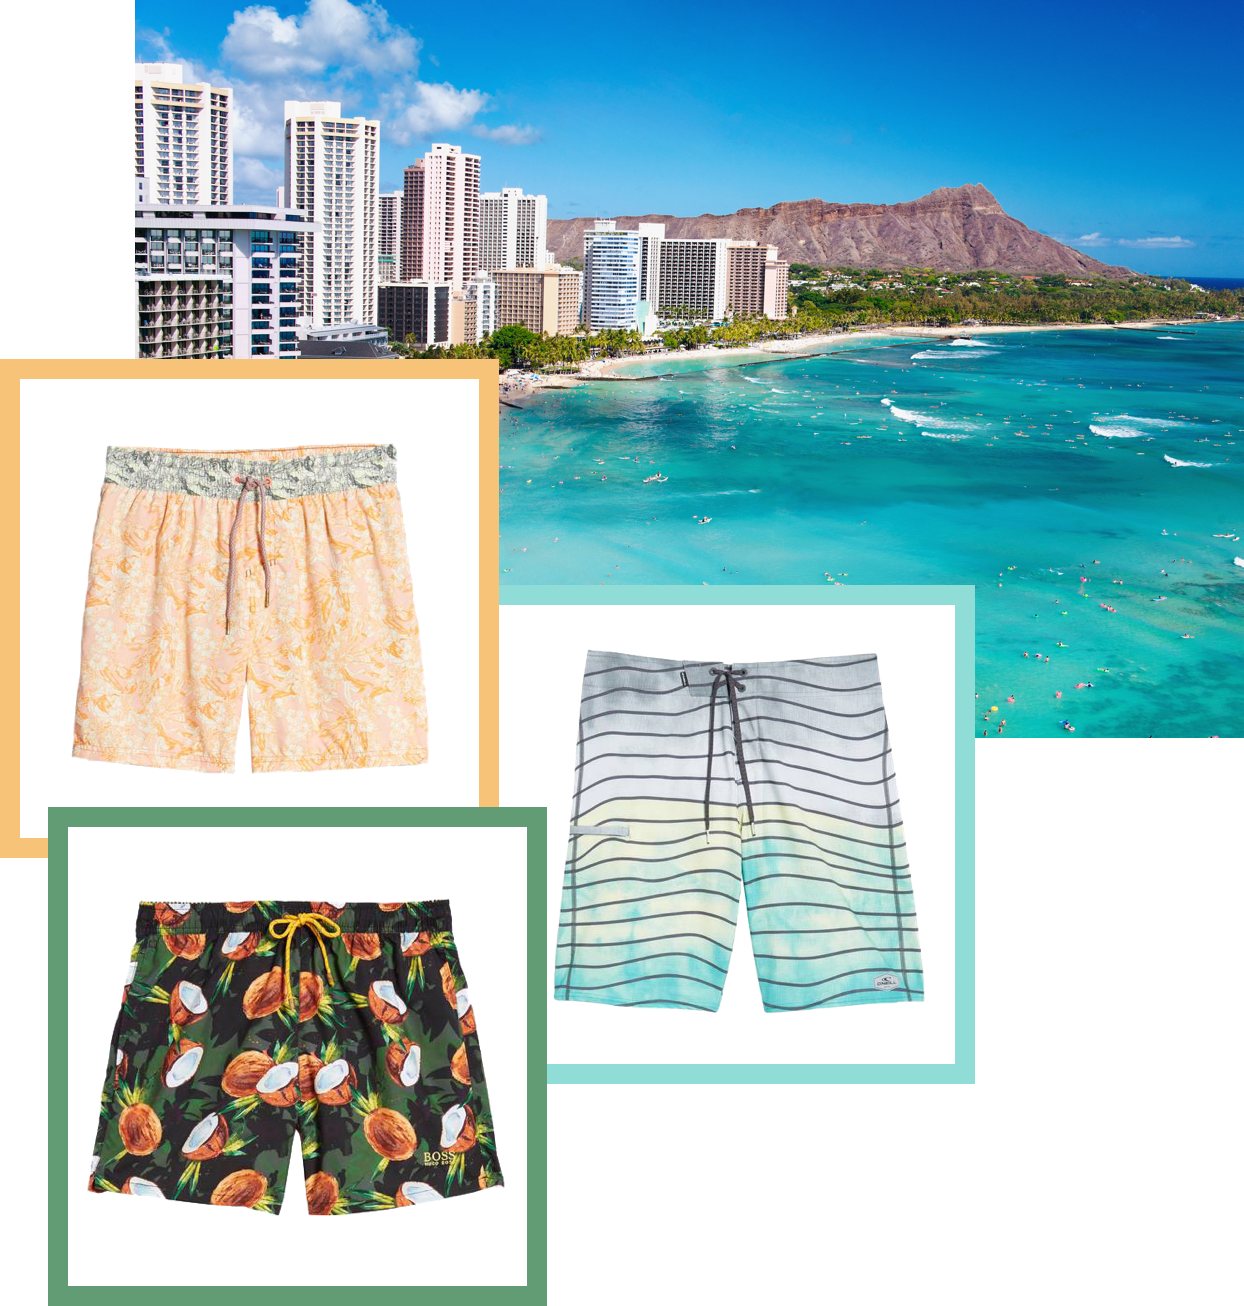 Swimsuits inspired by Honolulu